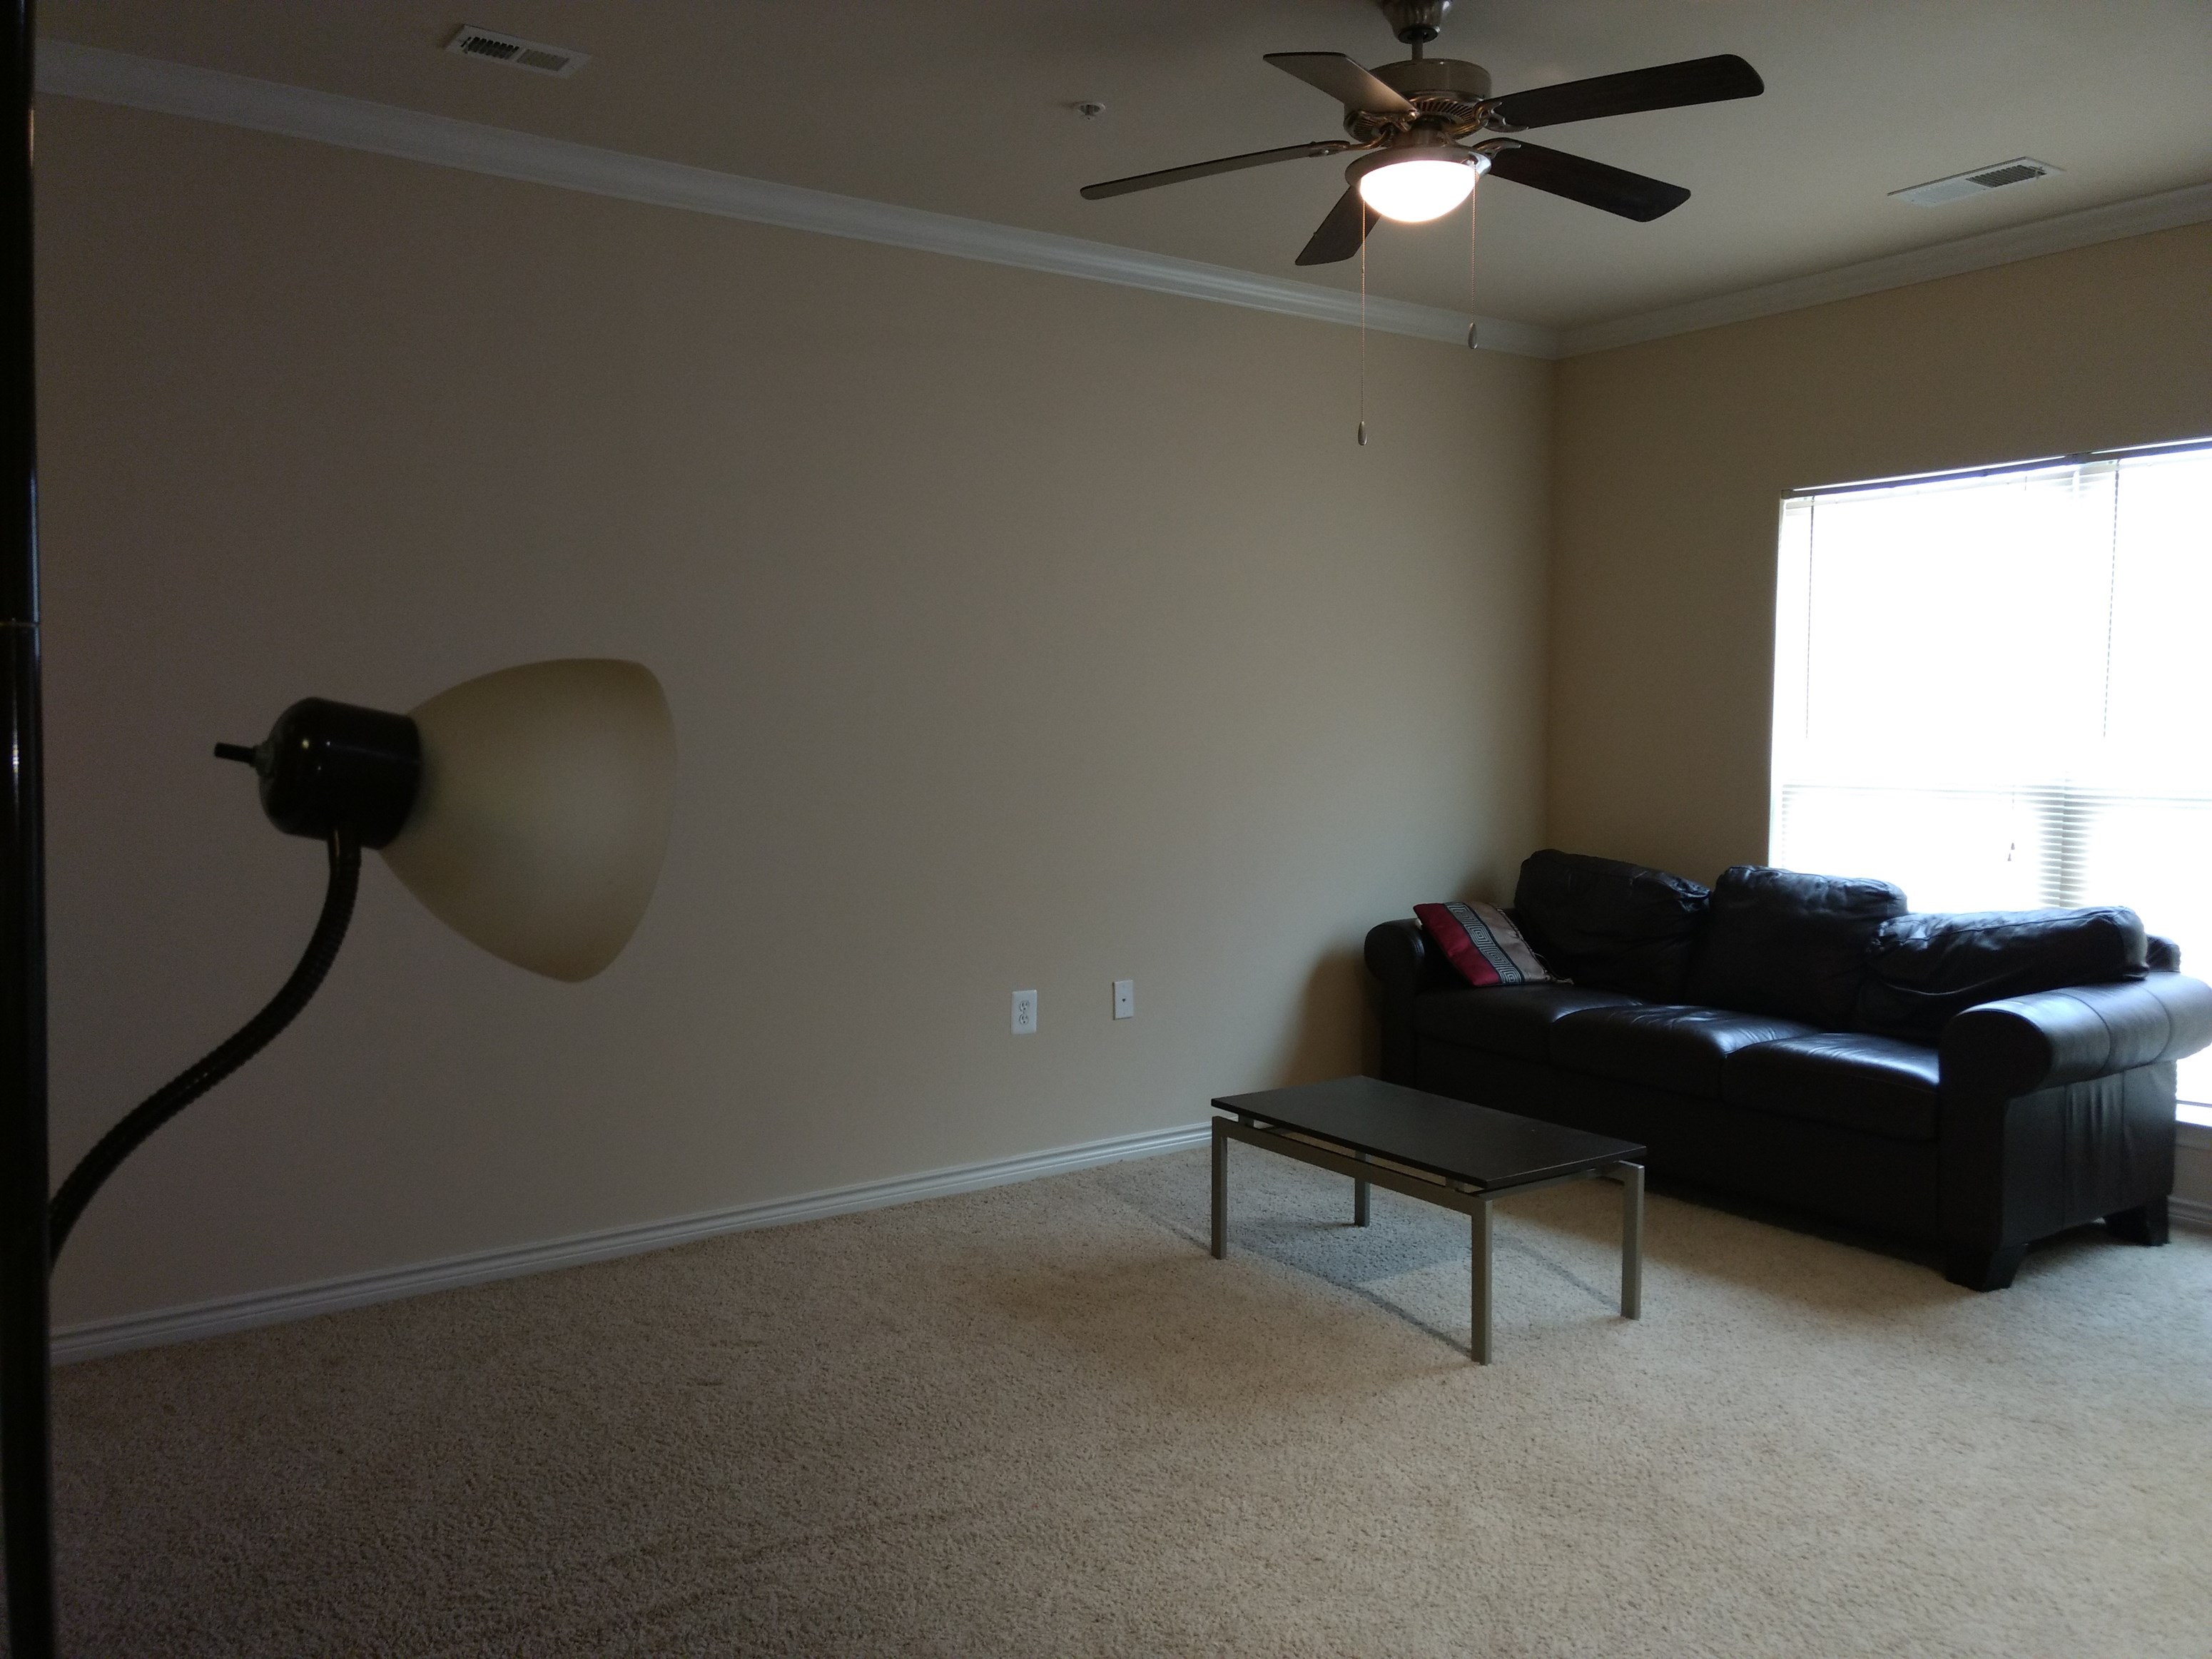 Upscale Ceiling Fan Short Term Accommodation In Upscale Neighborhood In Ashburn 1 Bhk Apartments And Flats In Ashburn Va 1154418 Sulekha Rentals